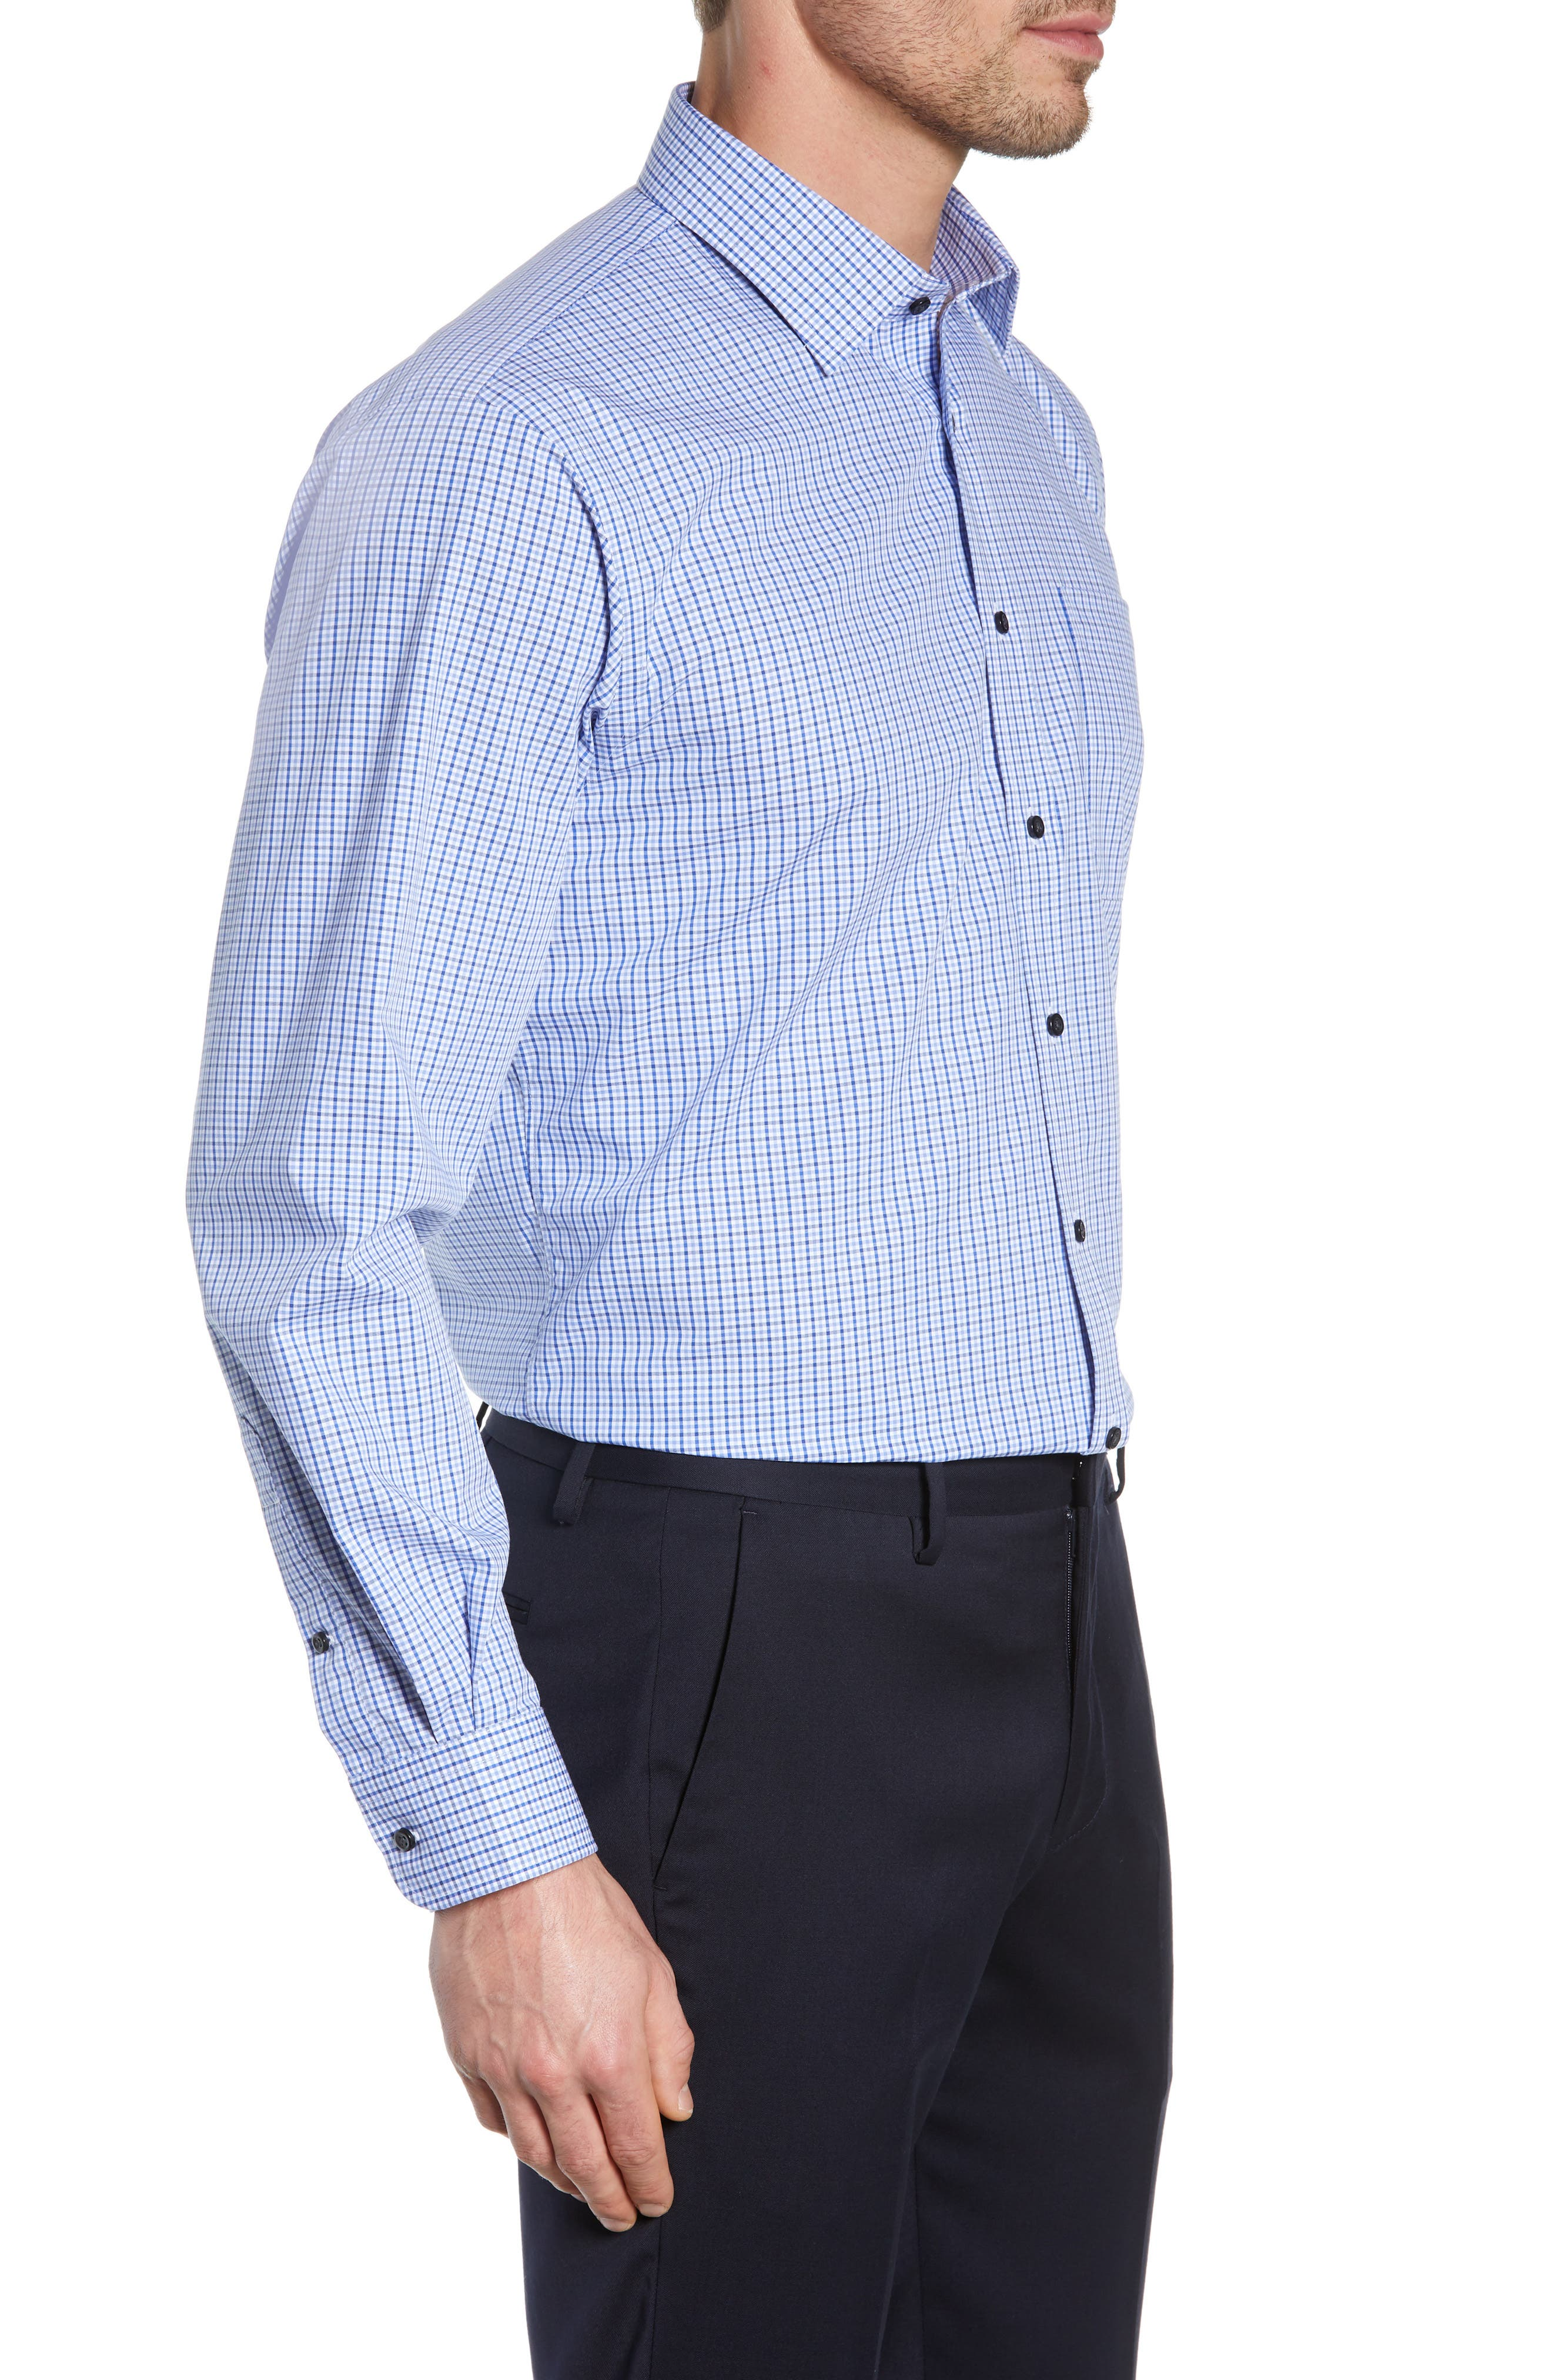 NORDSTROM MEN'S SHOP, Traditional Fit Non-Iron Check Dress Shirt, Alternate thumbnail 4, color, BLUE MARINE